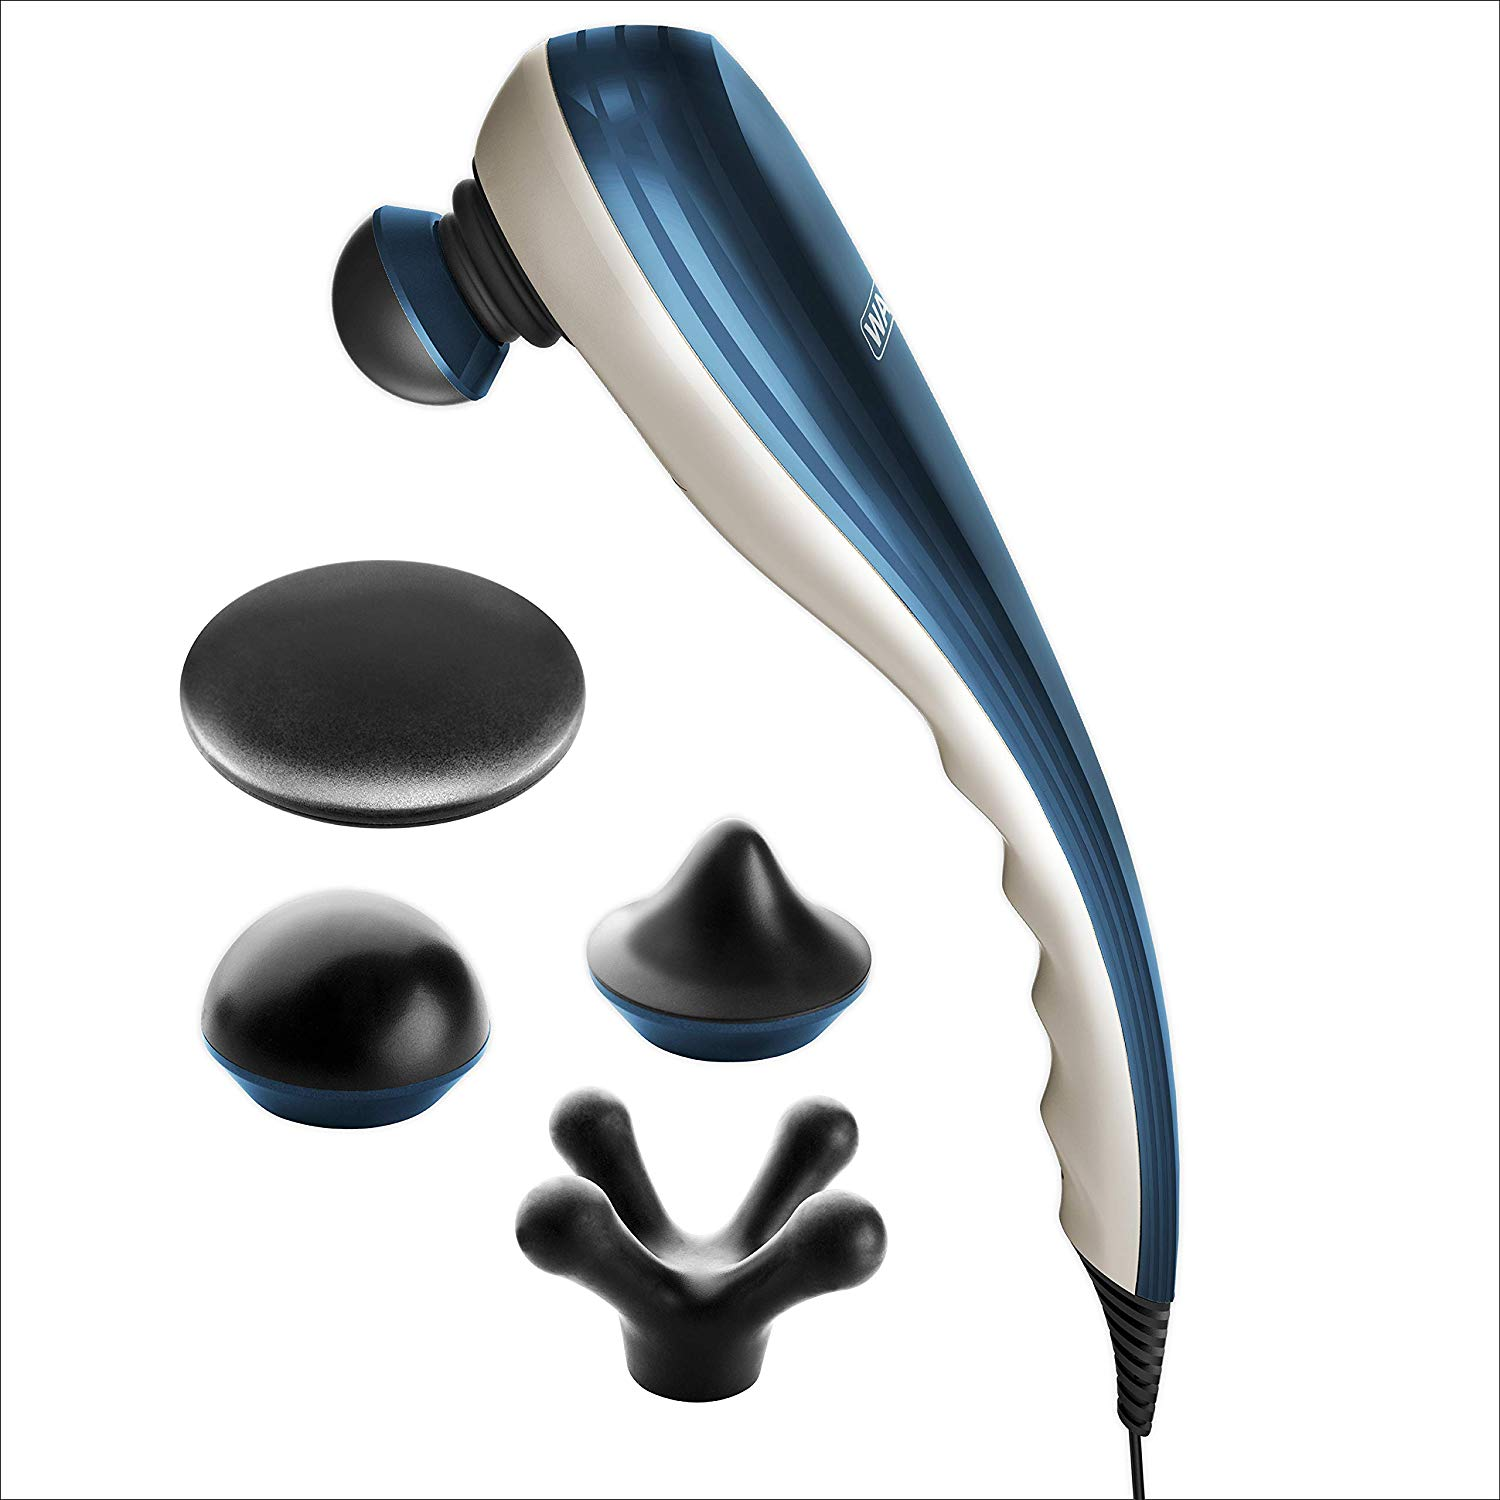 Wahl Percussion Therapeutic | Massage Machine For Backpain